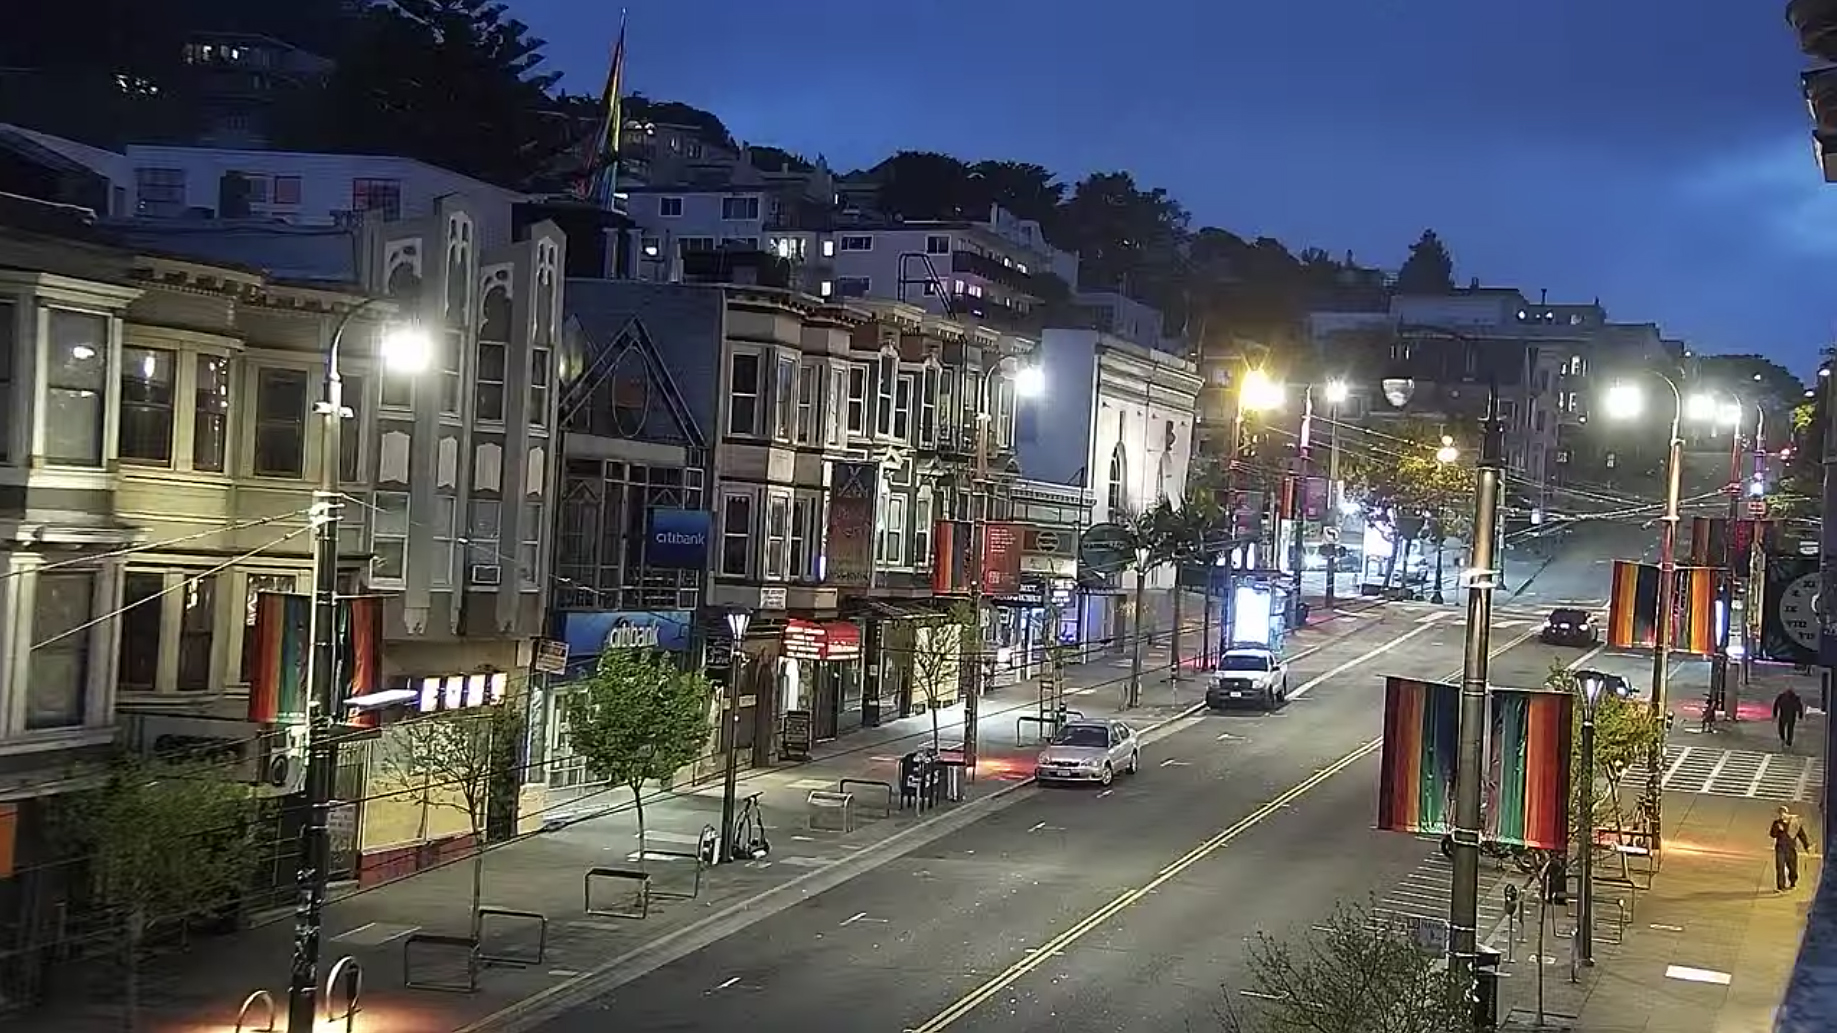 Castro Street, San Francisco, California. April 12, 2020, 8:08:07 PM PST